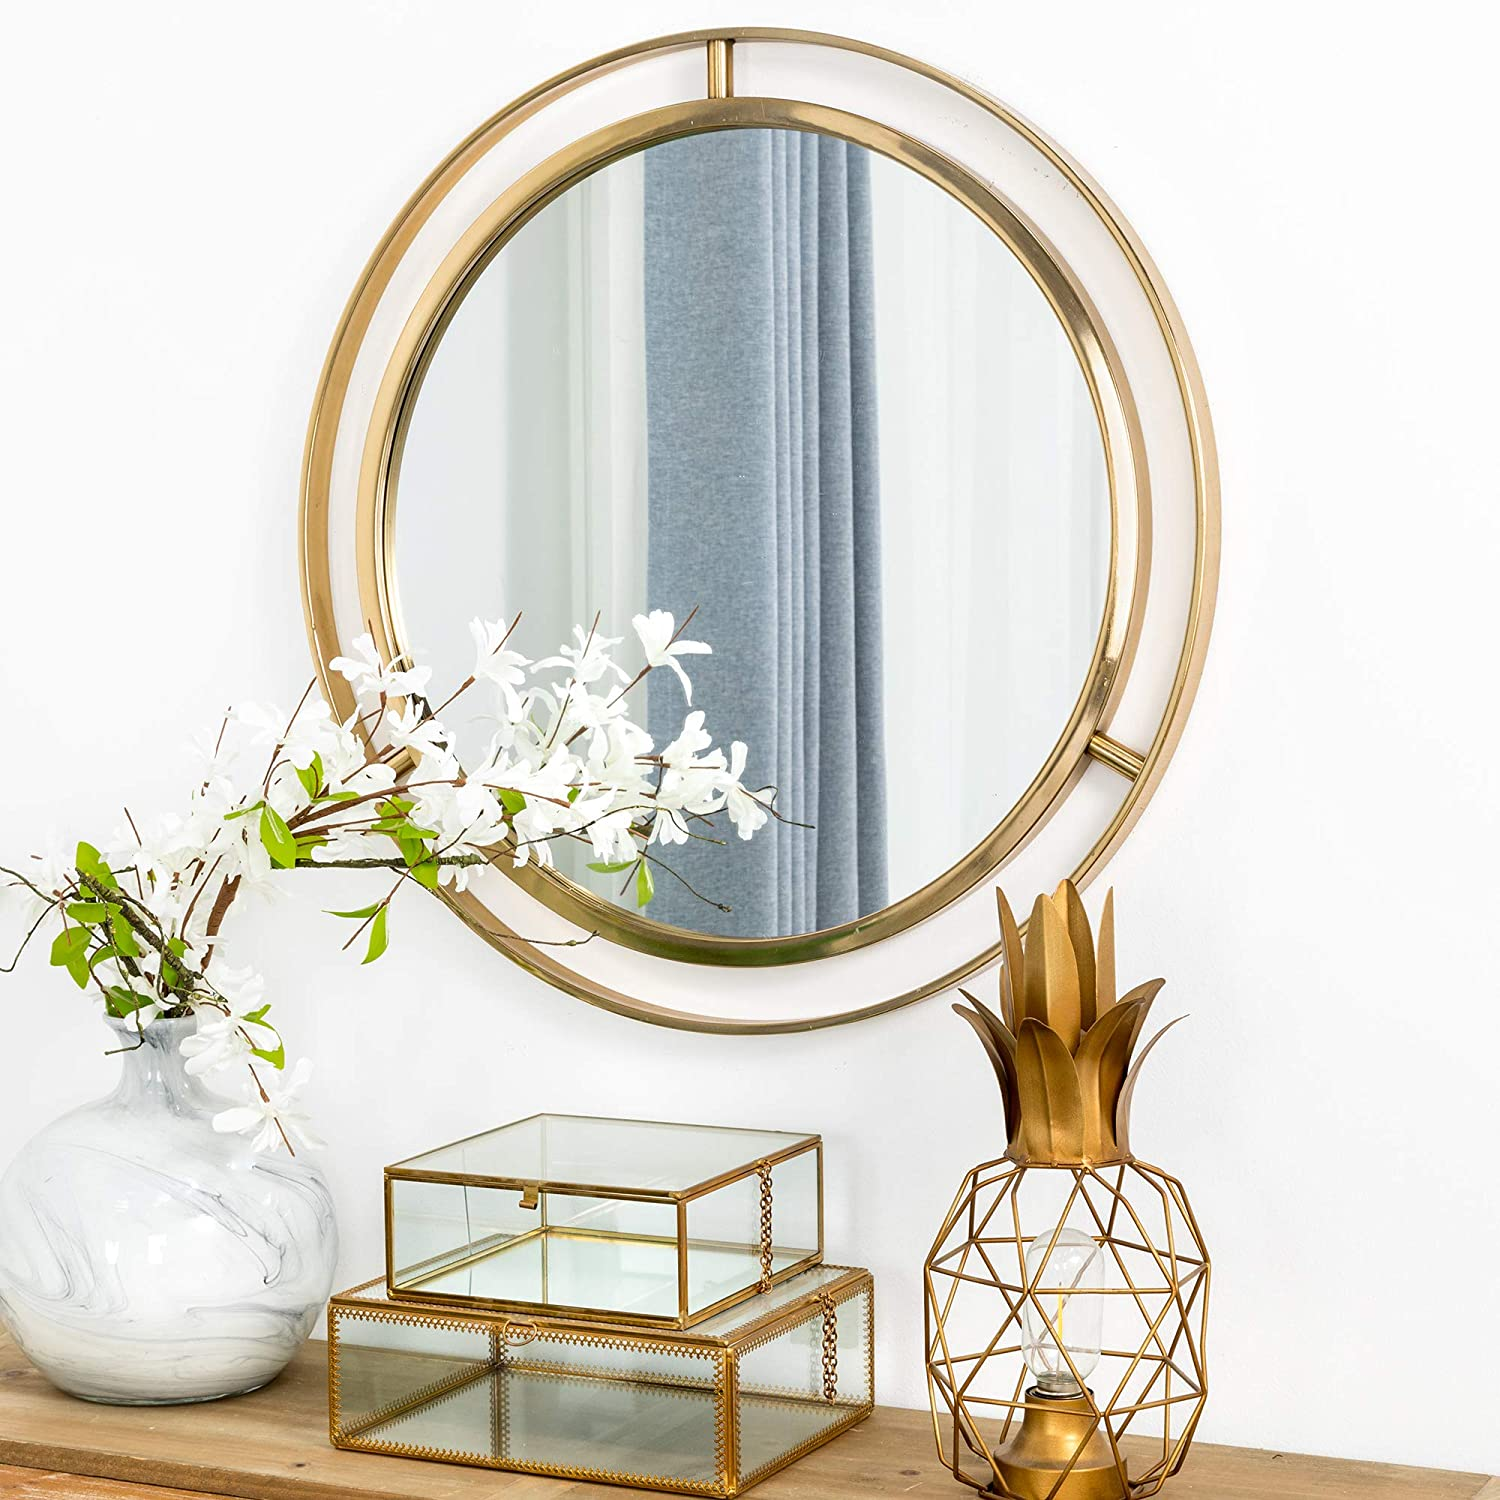 "Glitzhome 24"" Decorative Wall Mirrors Modern Deluxe Metal Round Wall Mirror with Golden Circle Ring Frame for Bedroom Bathroom Living Room Entryway"